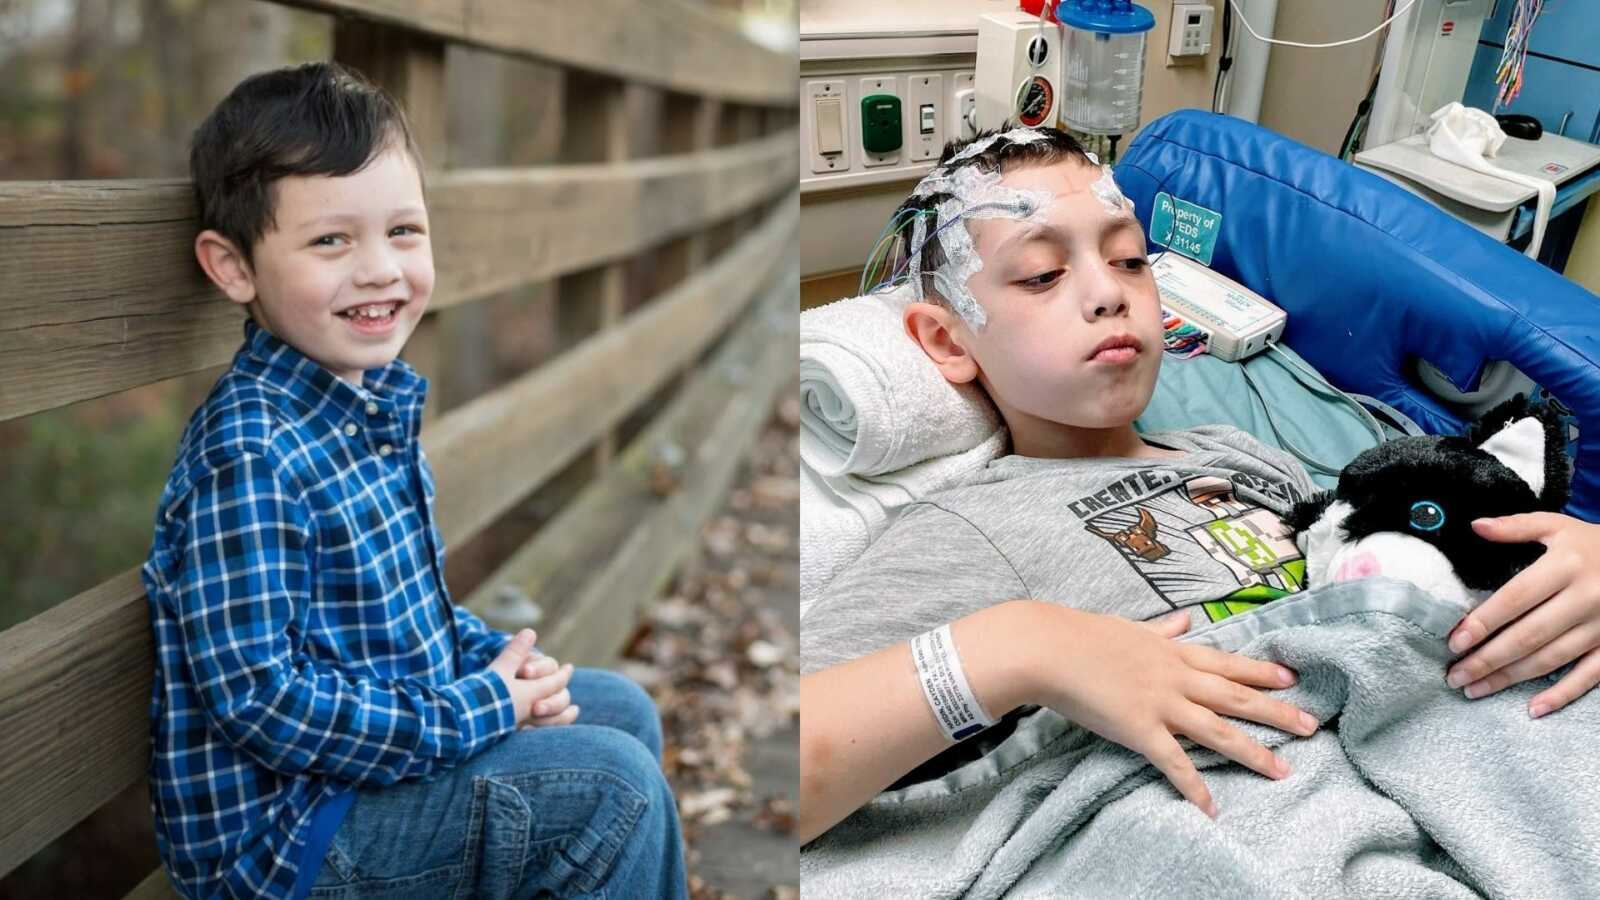 Special needs mom shares photos of her son with severe epilepsy, one smiling and carefree and one looking sad in the hospital